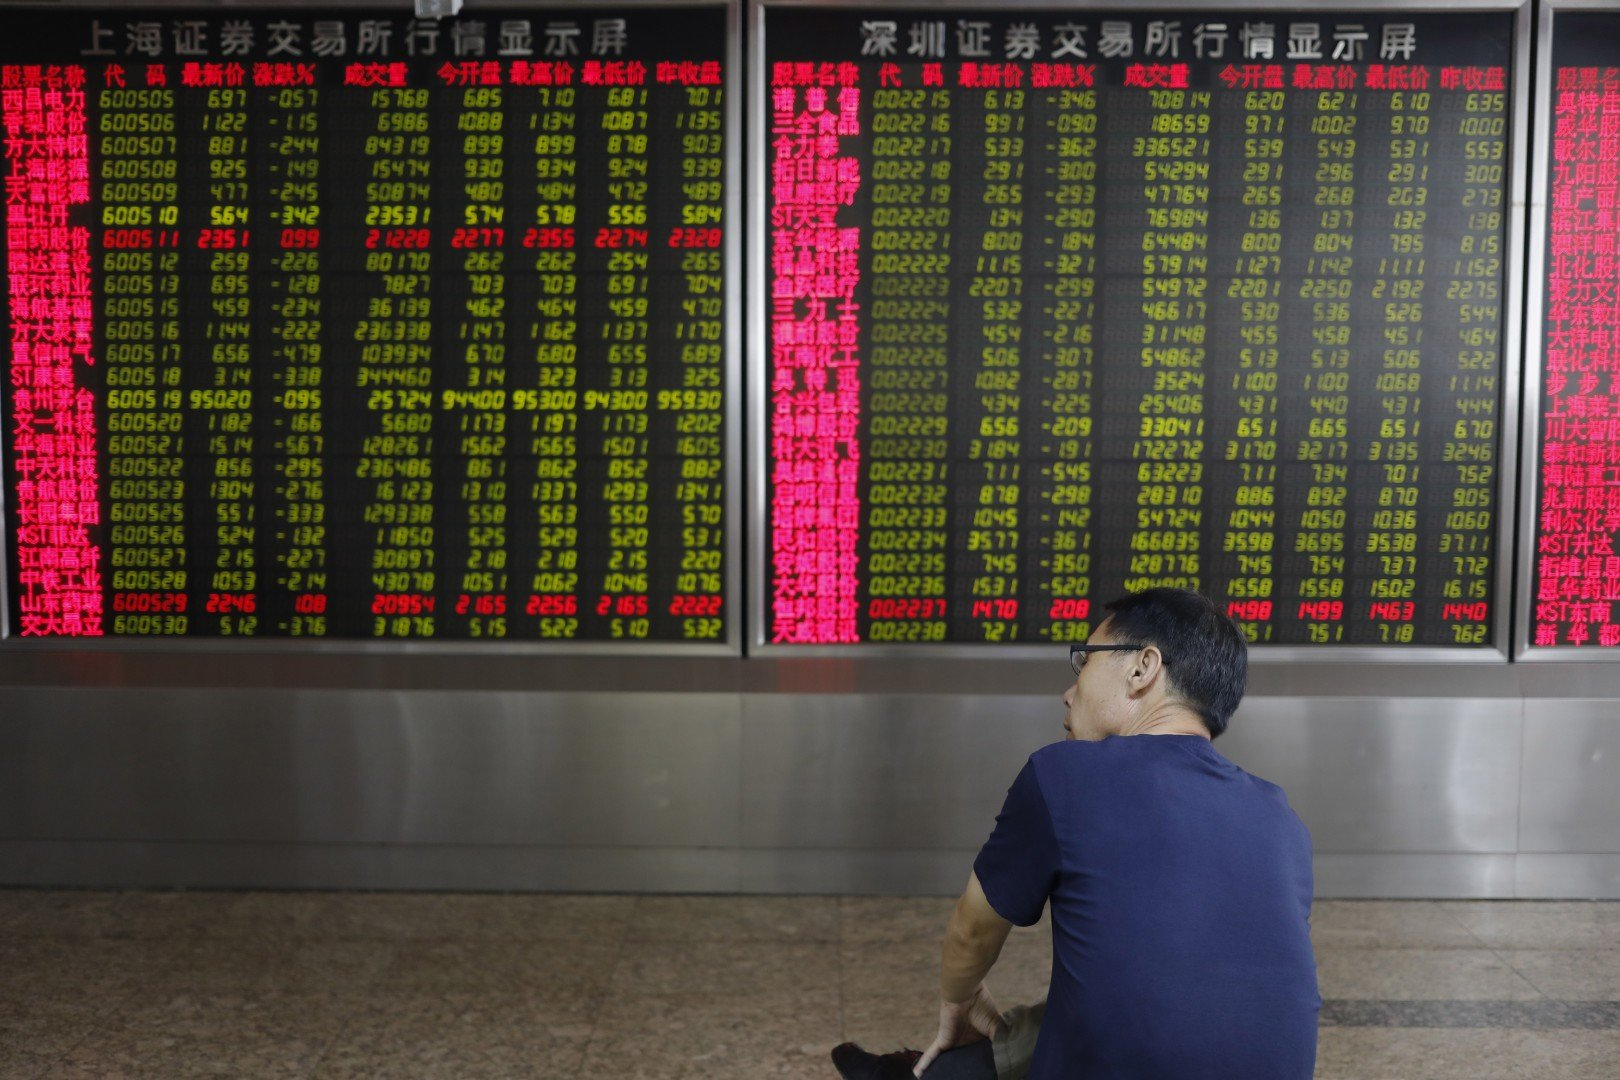 Hong Kong stocks see longest run of declines in two decades as city